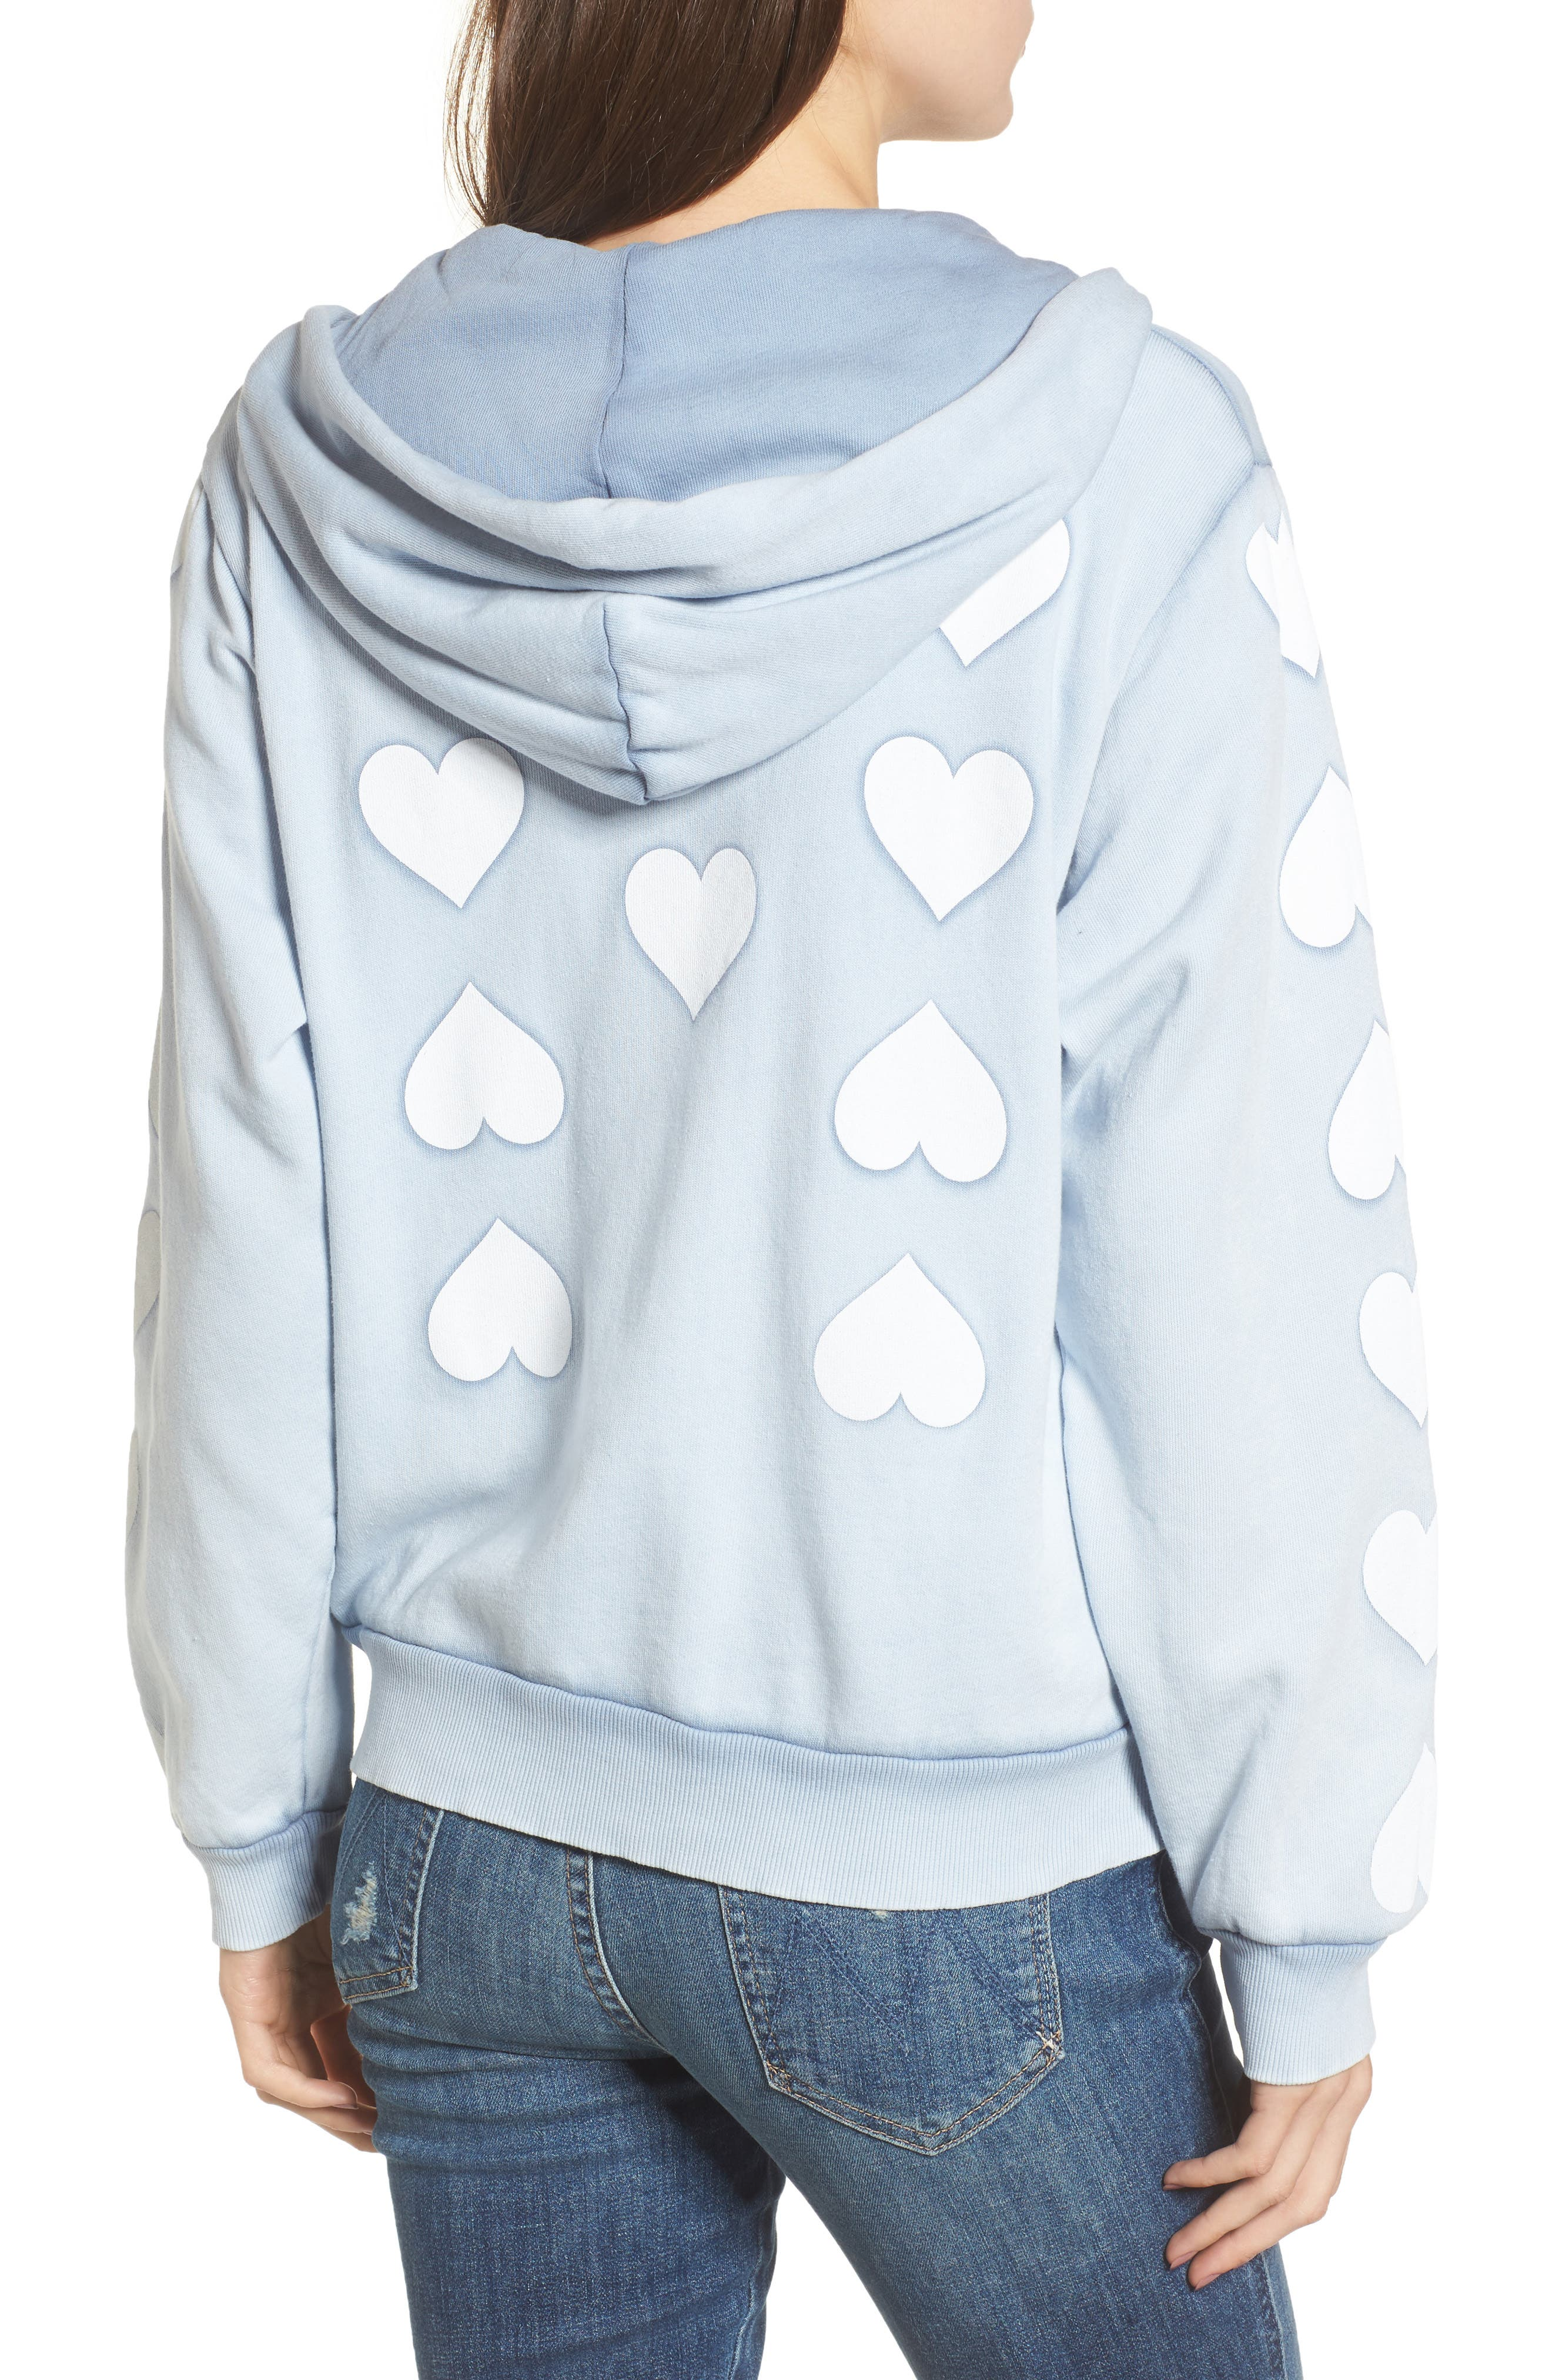 Heart of Hearts Zip Hoodie,                             Alternate thumbnail 2, color,                             Blue Ribbon